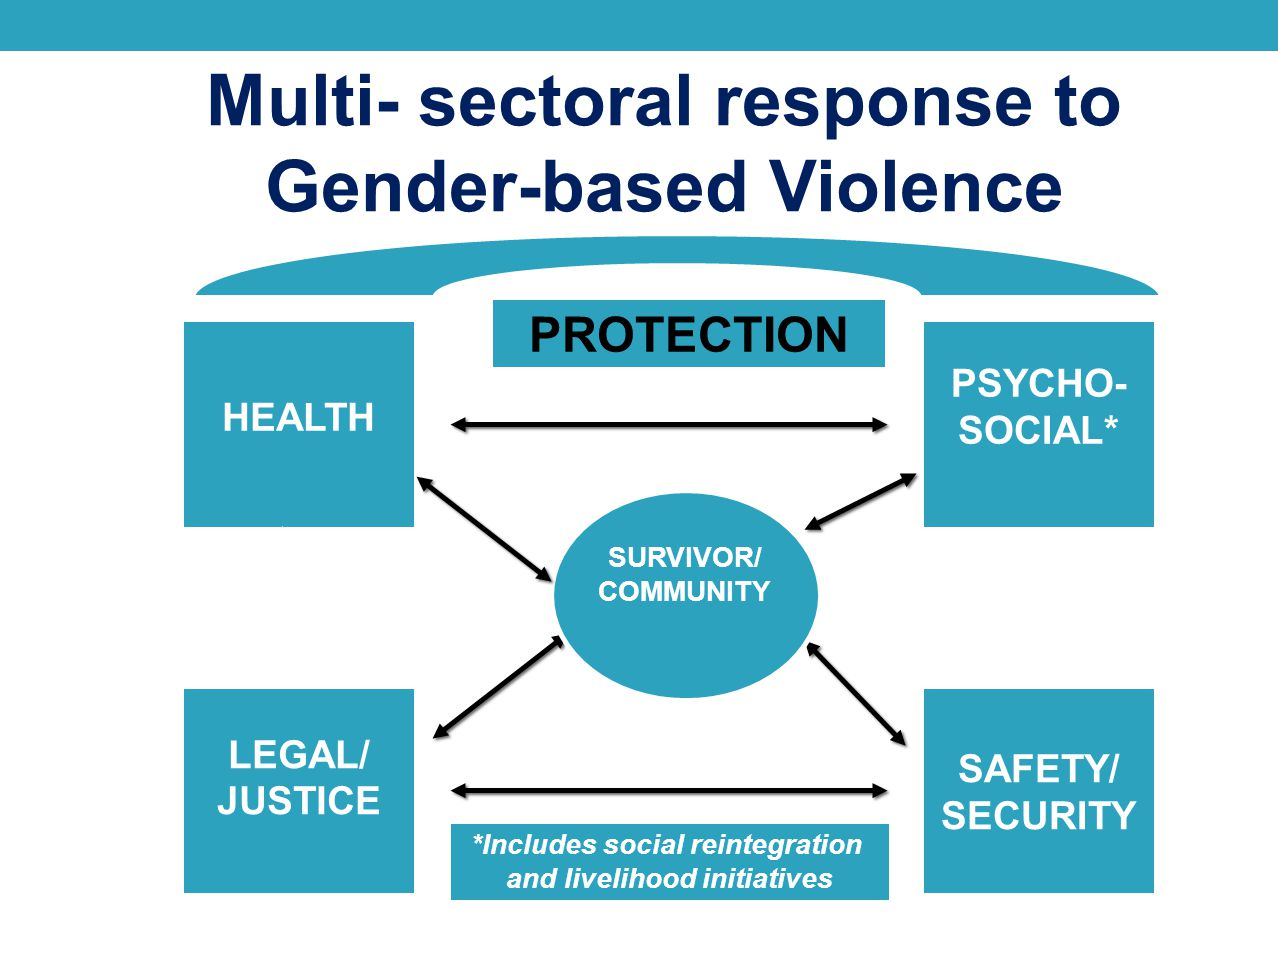 Multi- sectoral response to Gender-based Violence